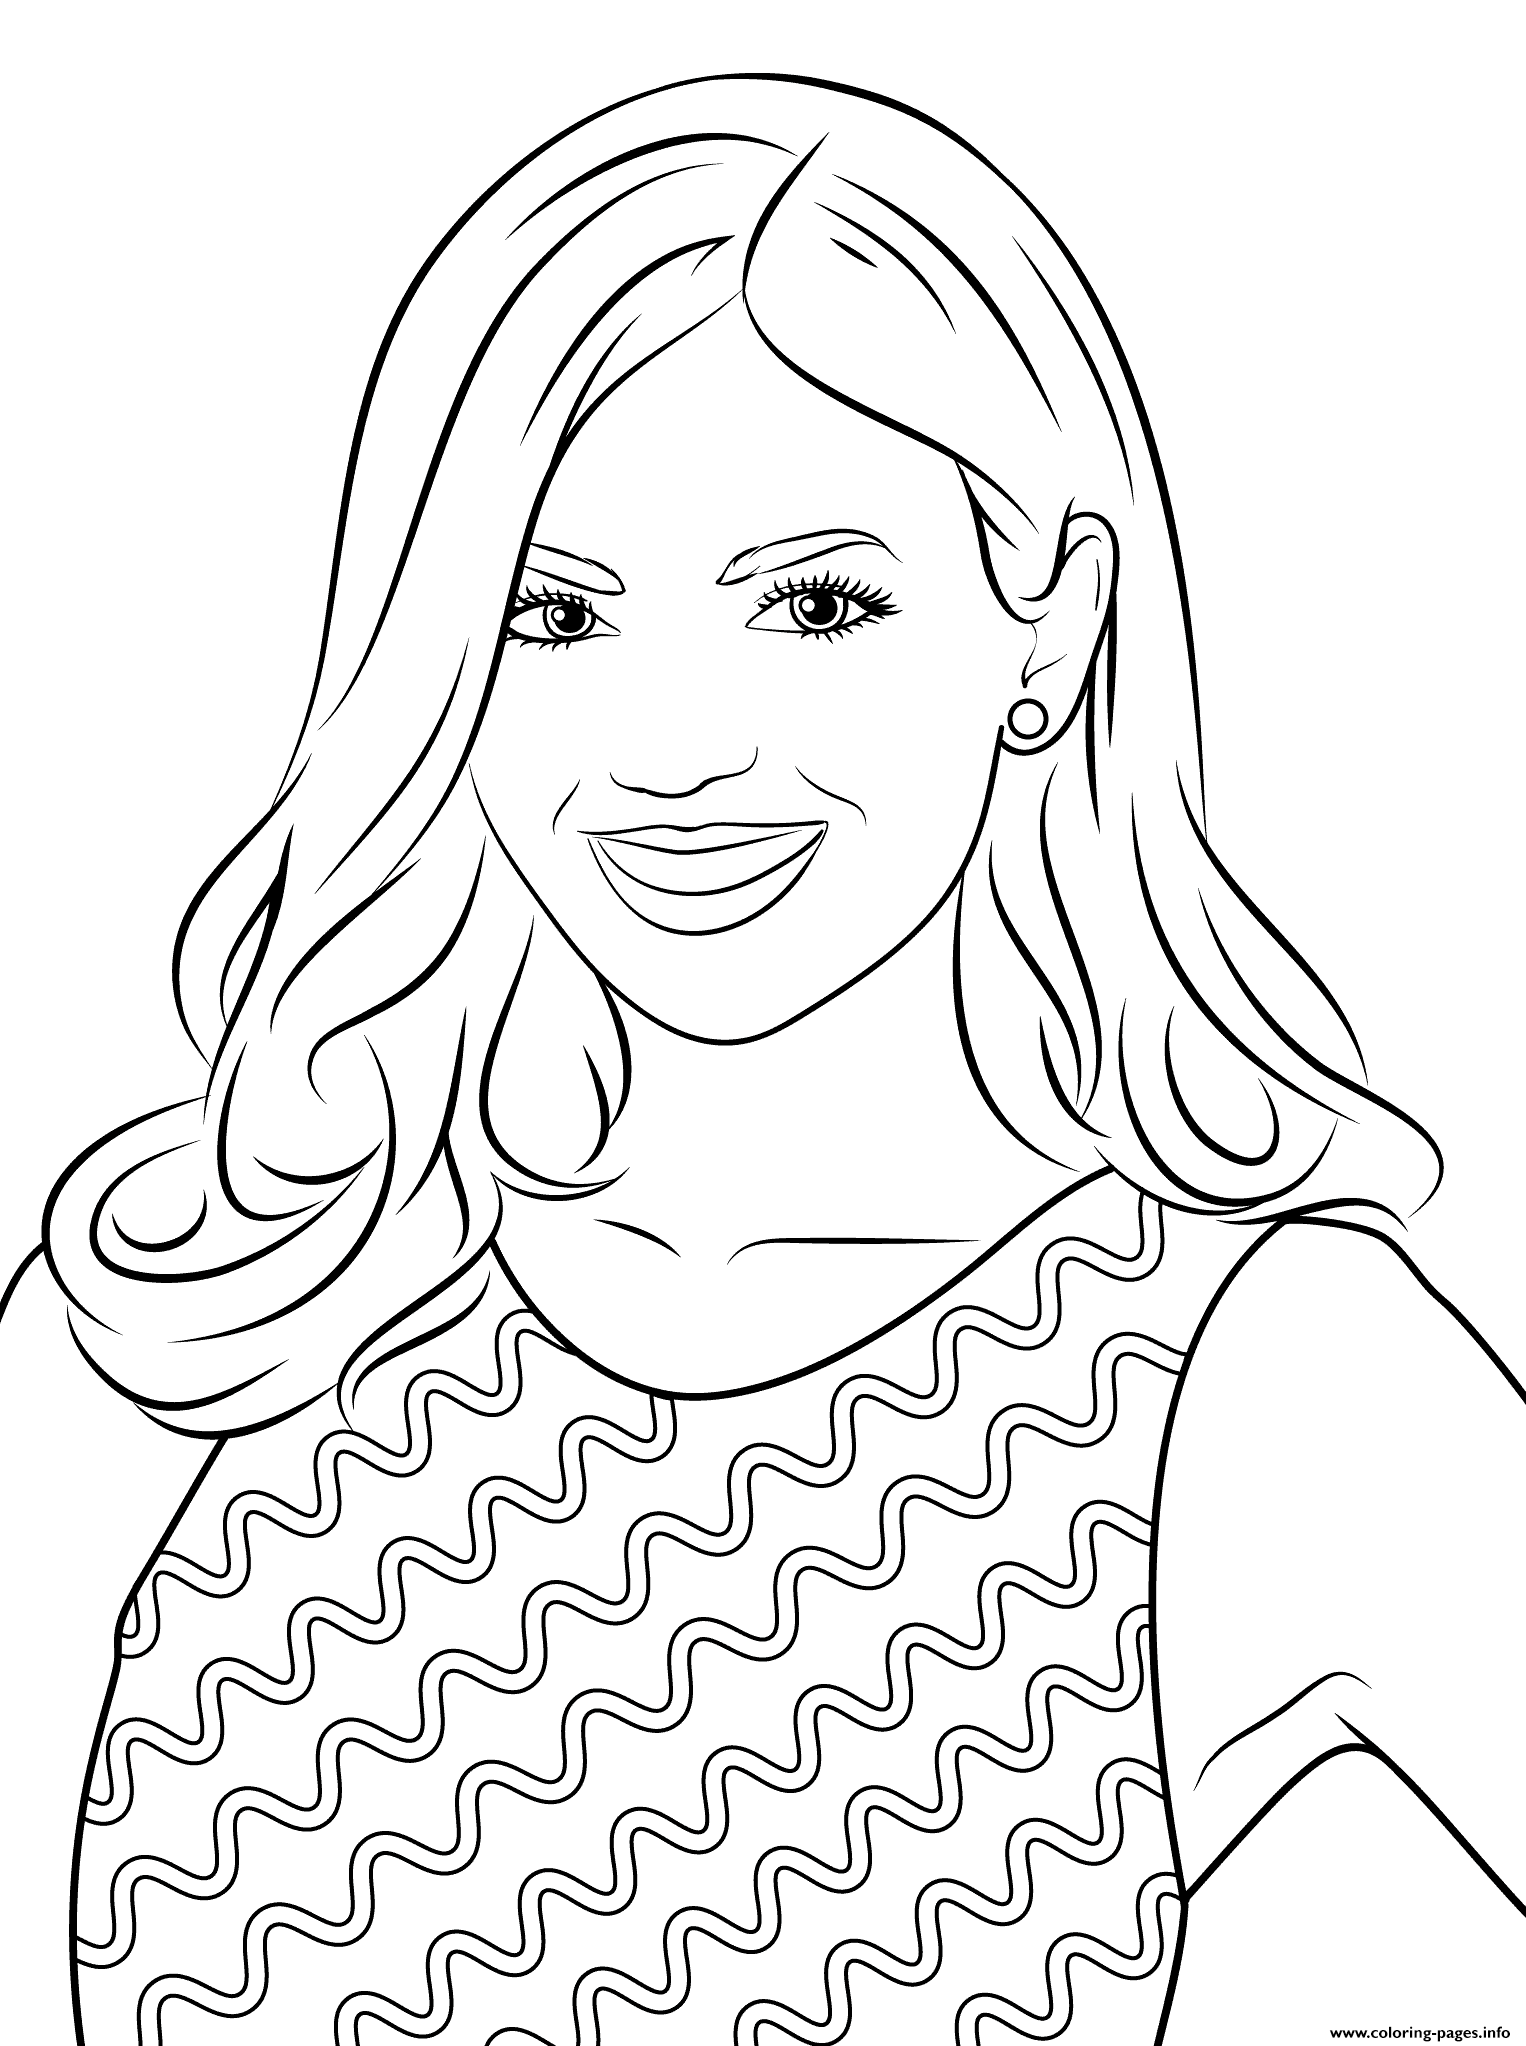 celebrities coloring pages - photo#6